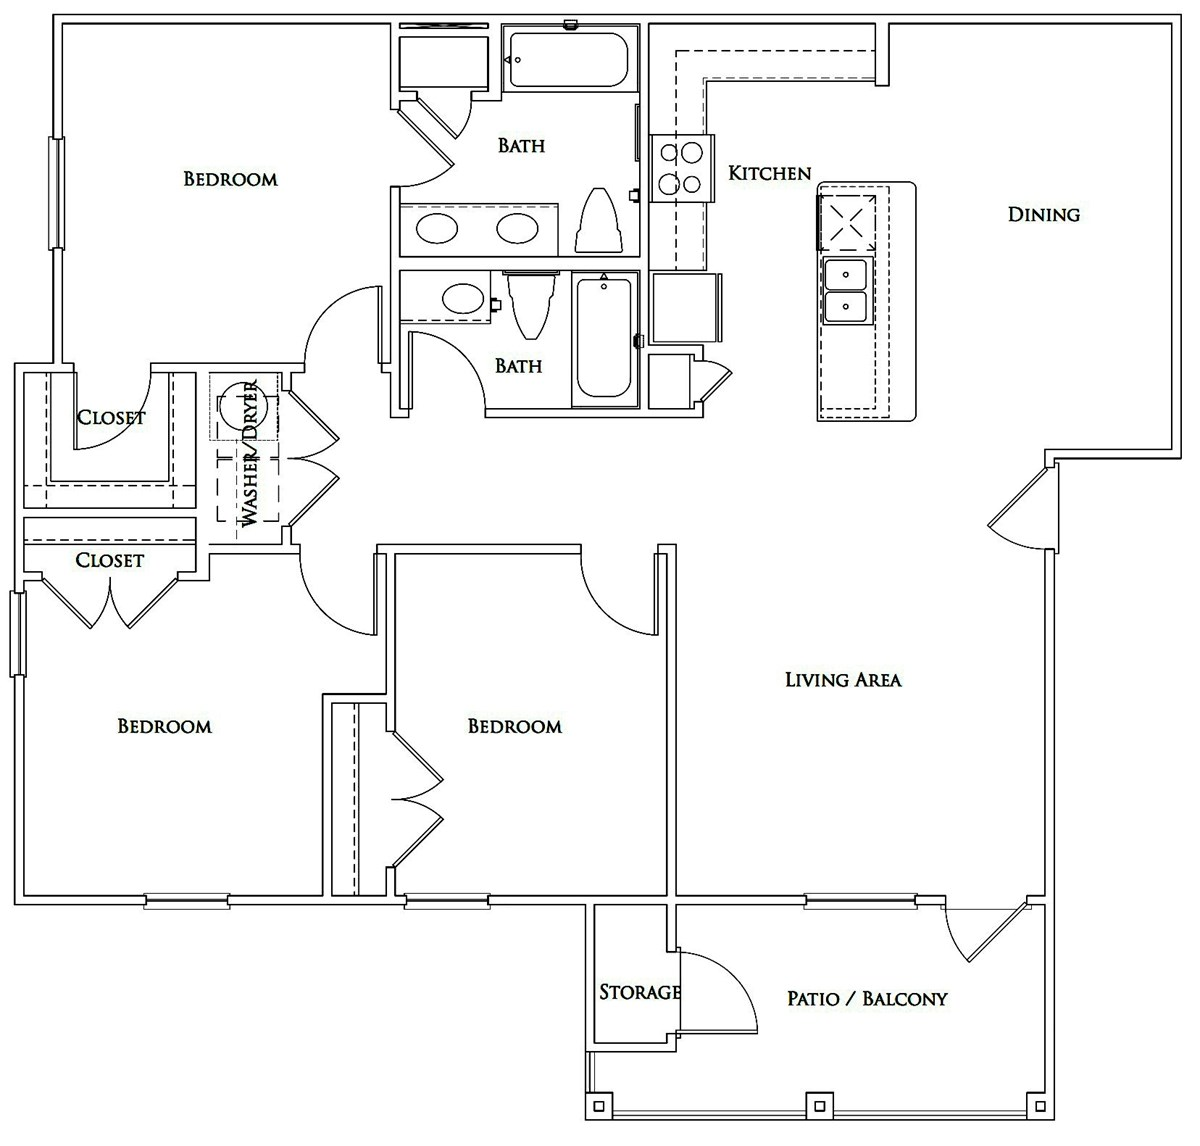 1,311 sq. ft. floor plan